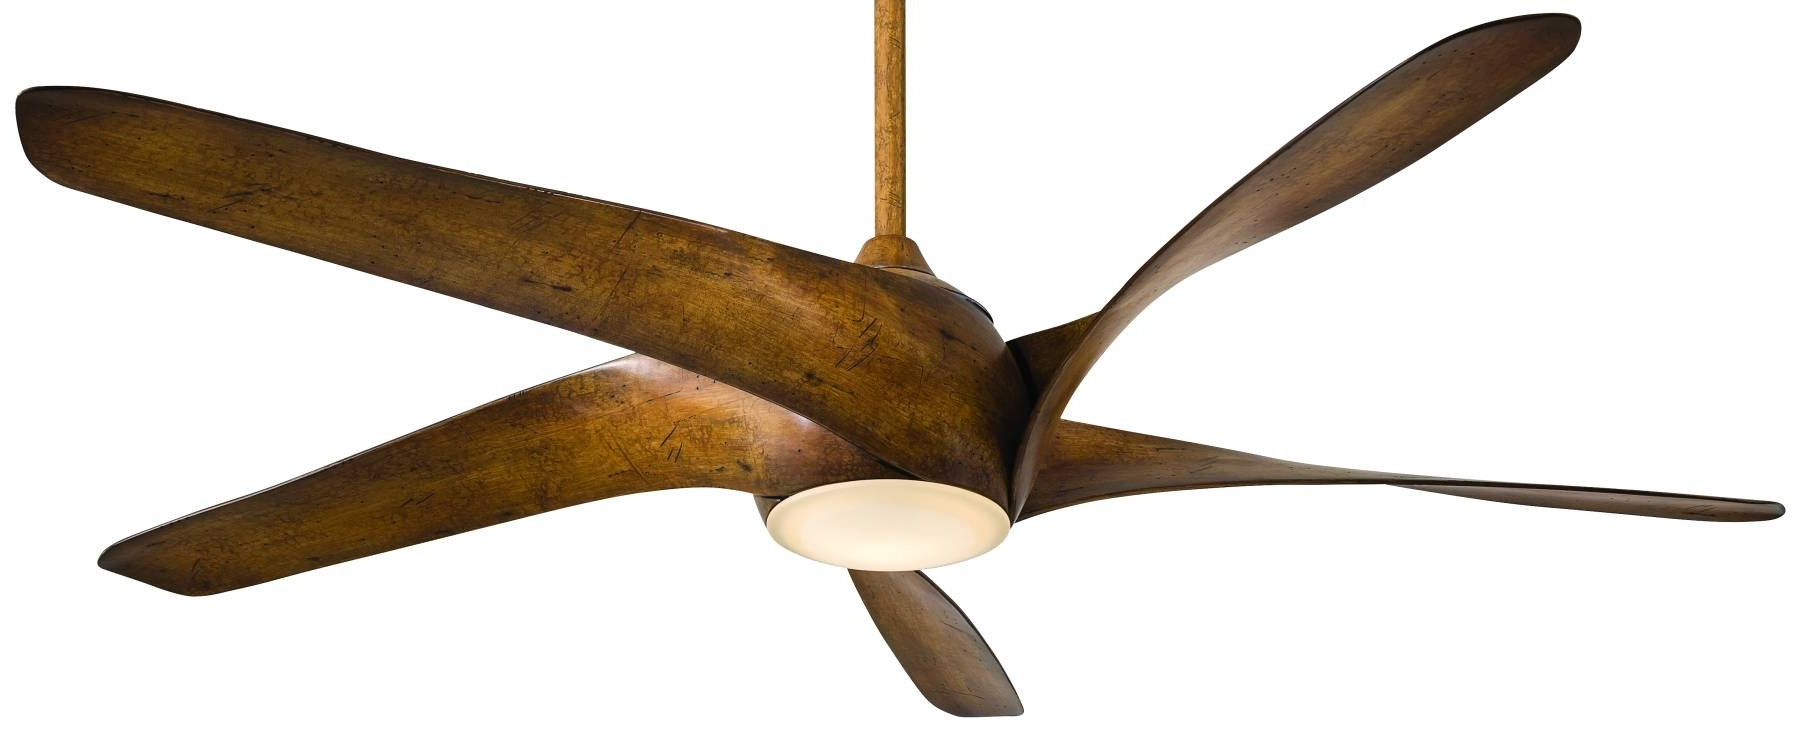 Oversized Outdoor Ceiling Fans Intended For Well Known Ceiling Fan: Amazing Large Ceiling Fans For Home Extra Large Ceiling (View 12 of 20)